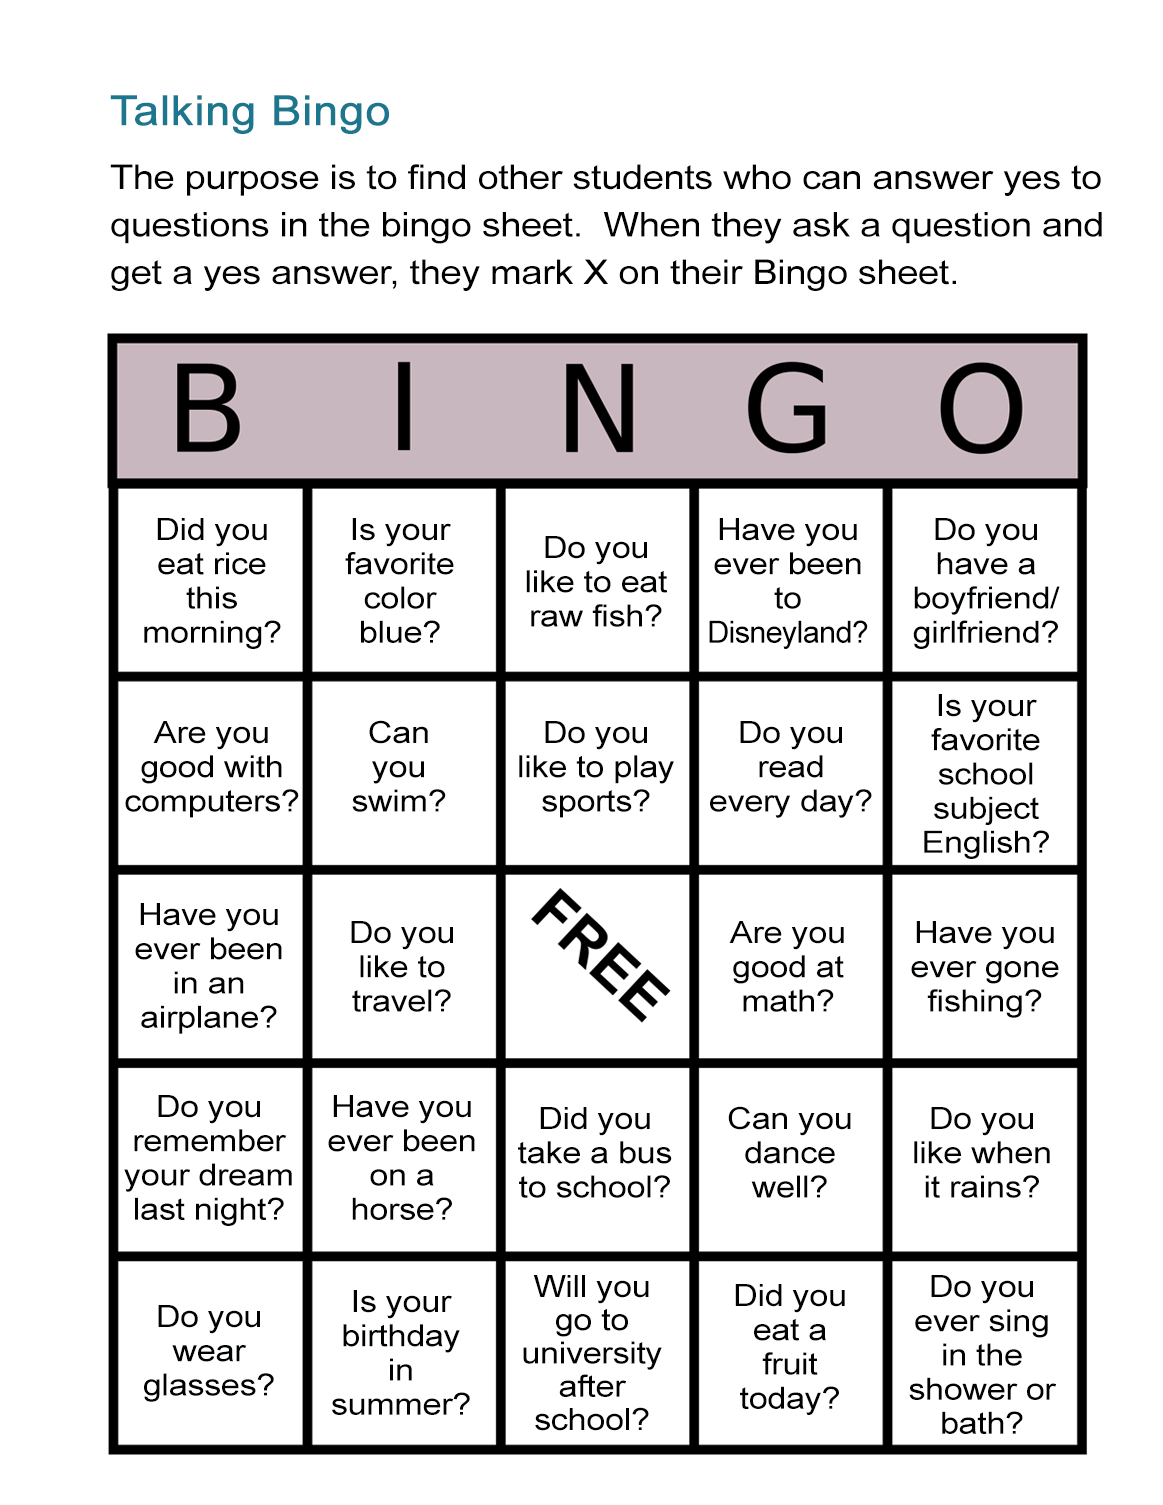 Esl Bingo Free Worksheet: Stand-Up Bingo - All Esl - Free Printable Esl Resources